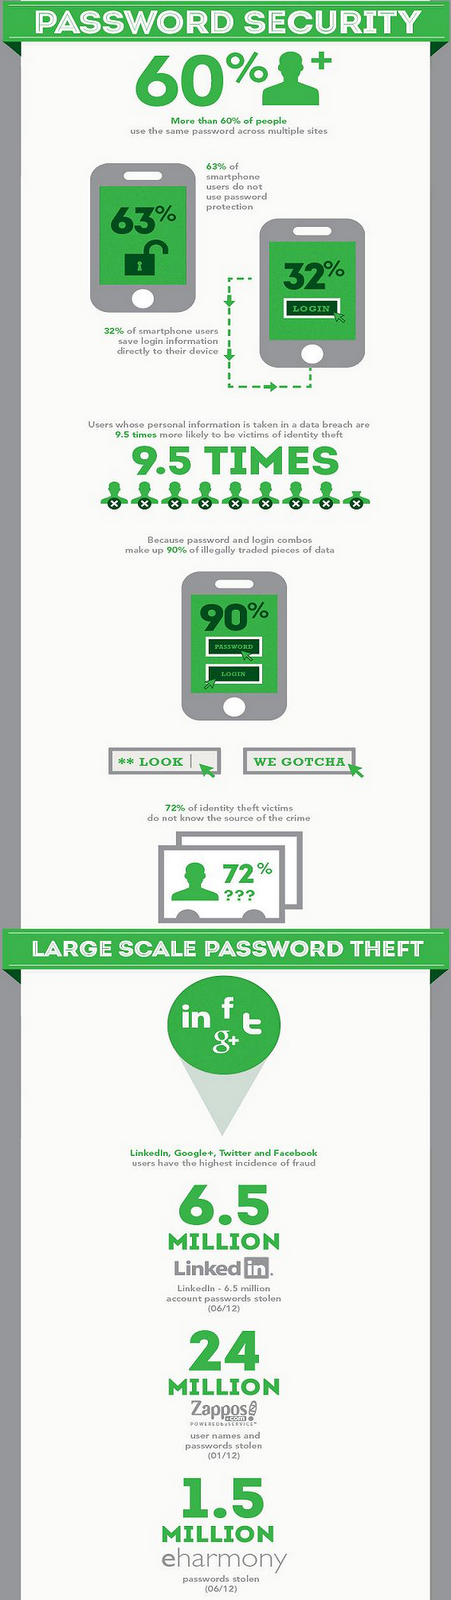 image : Password Theft In 2012